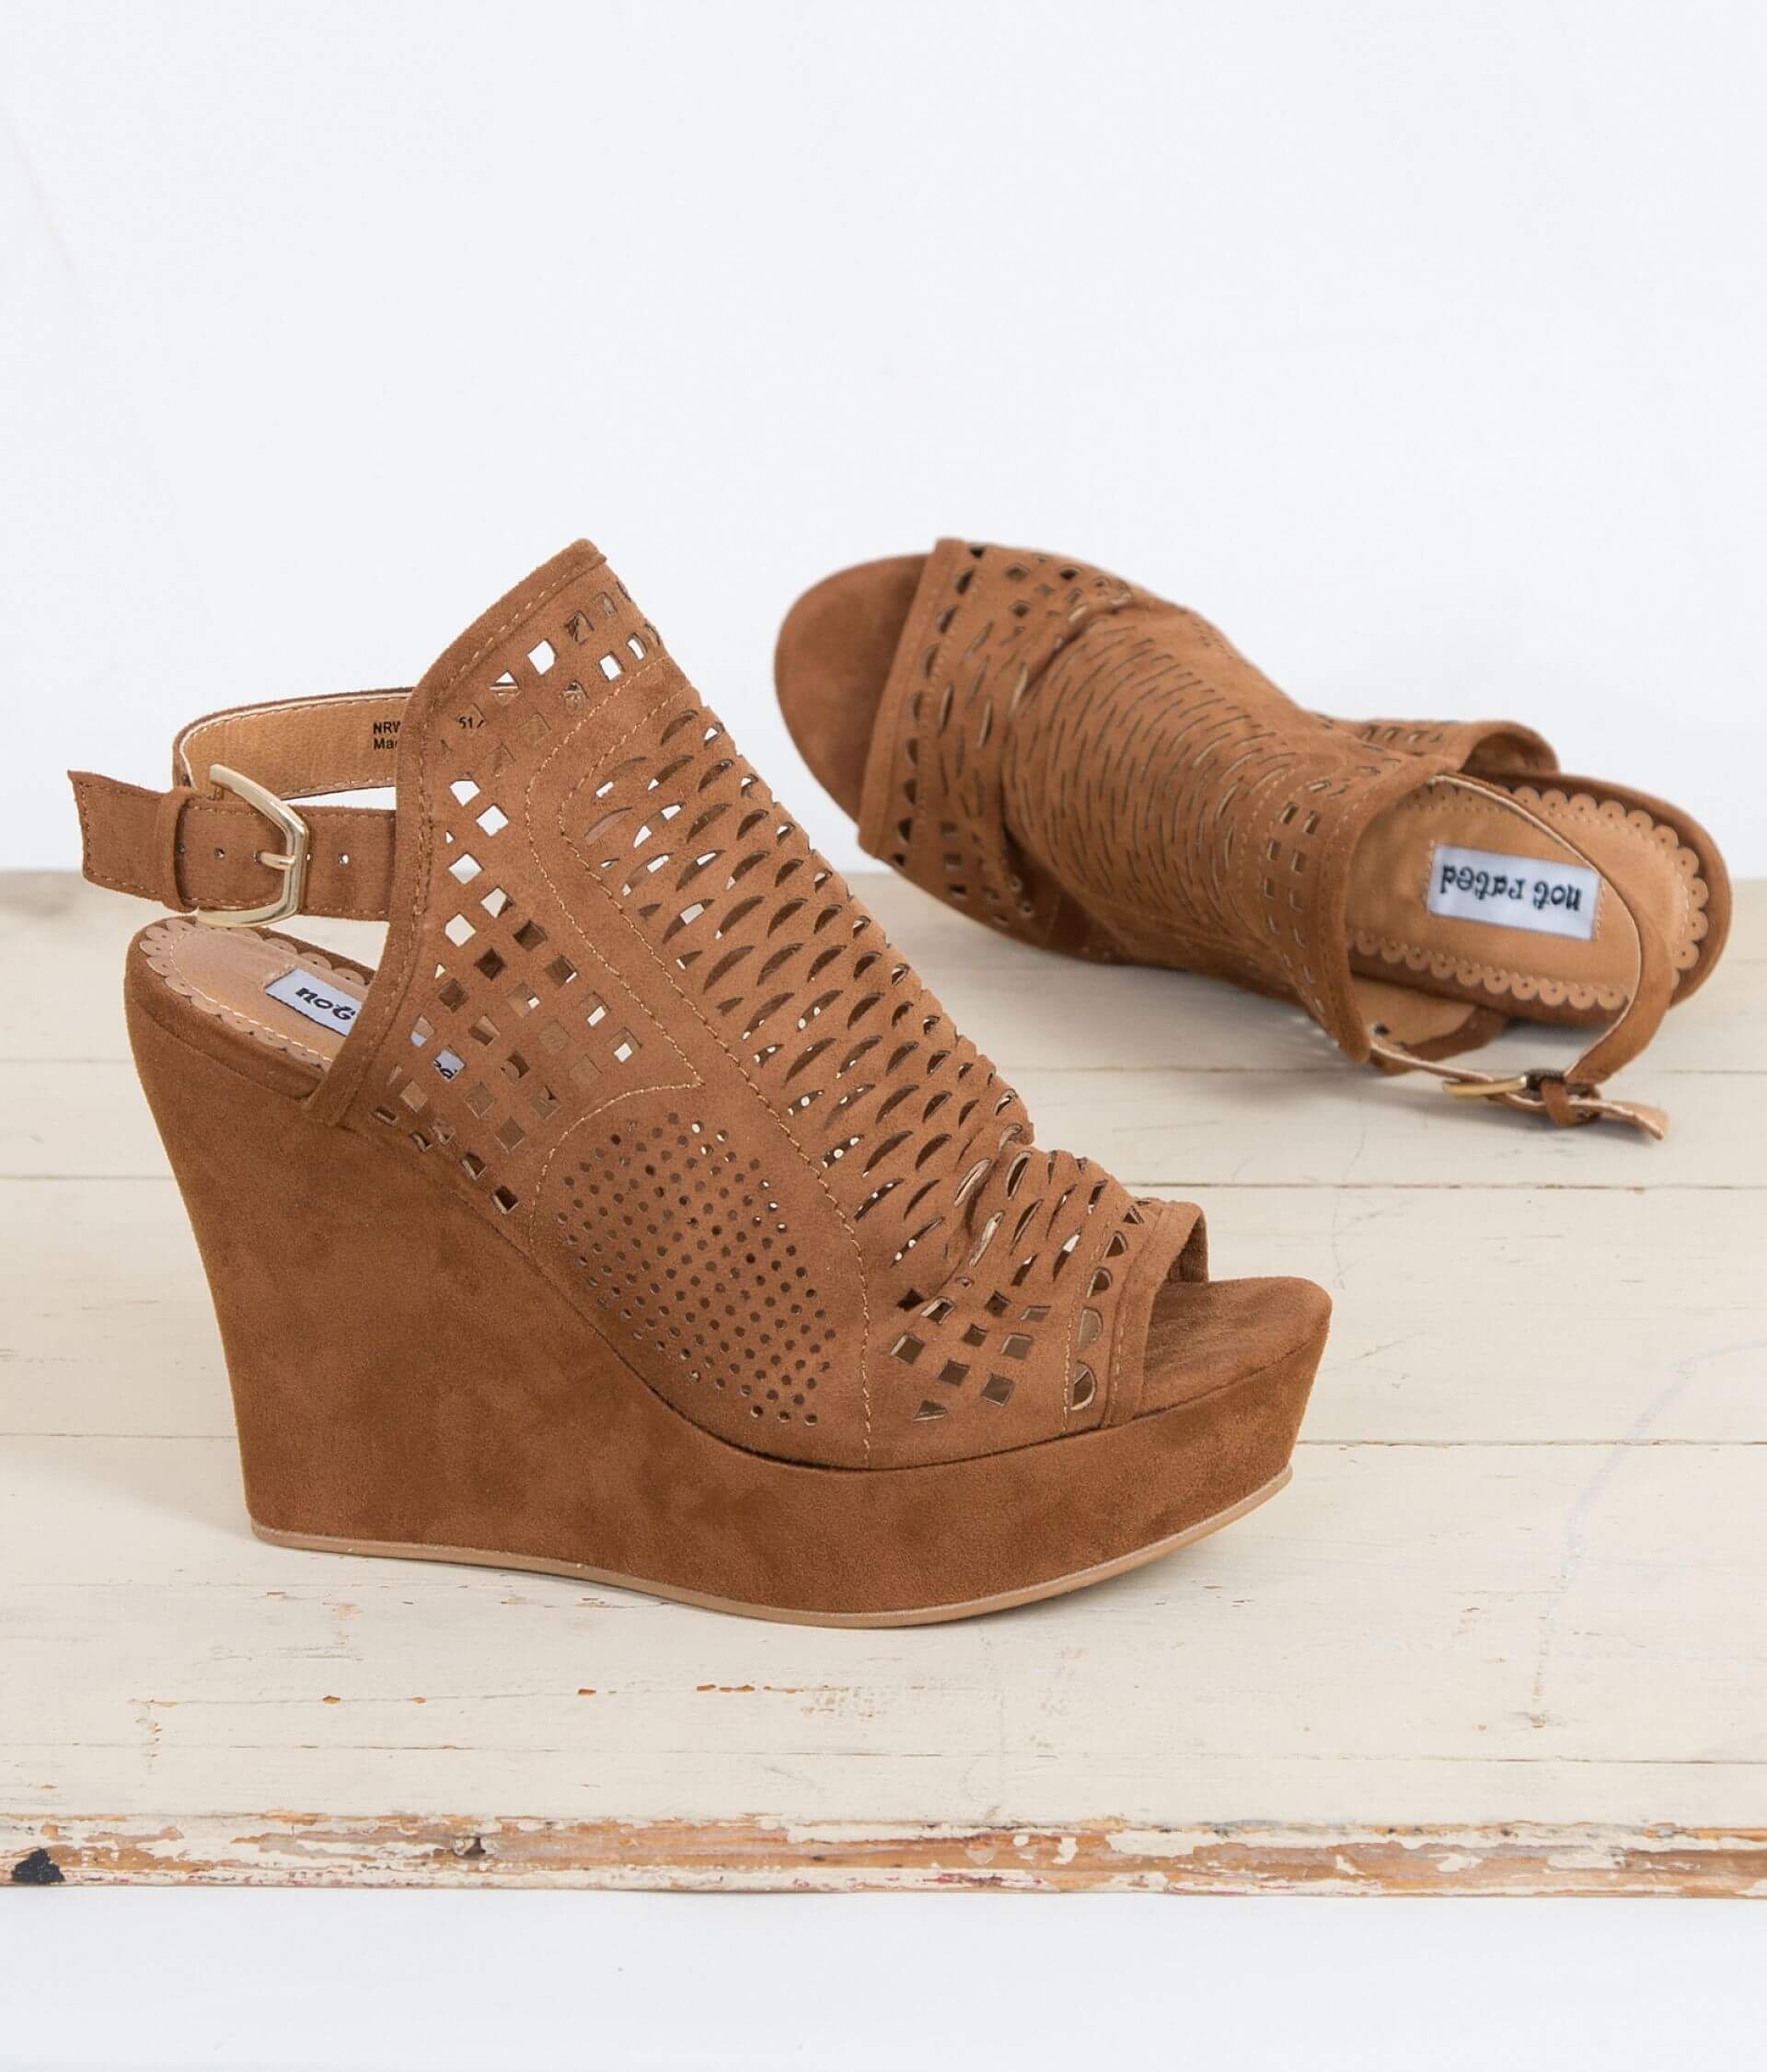 22d24a201b3bb Not Rated European Cafe Wedge Sandal - Women's Shoes in Tan | Buckle